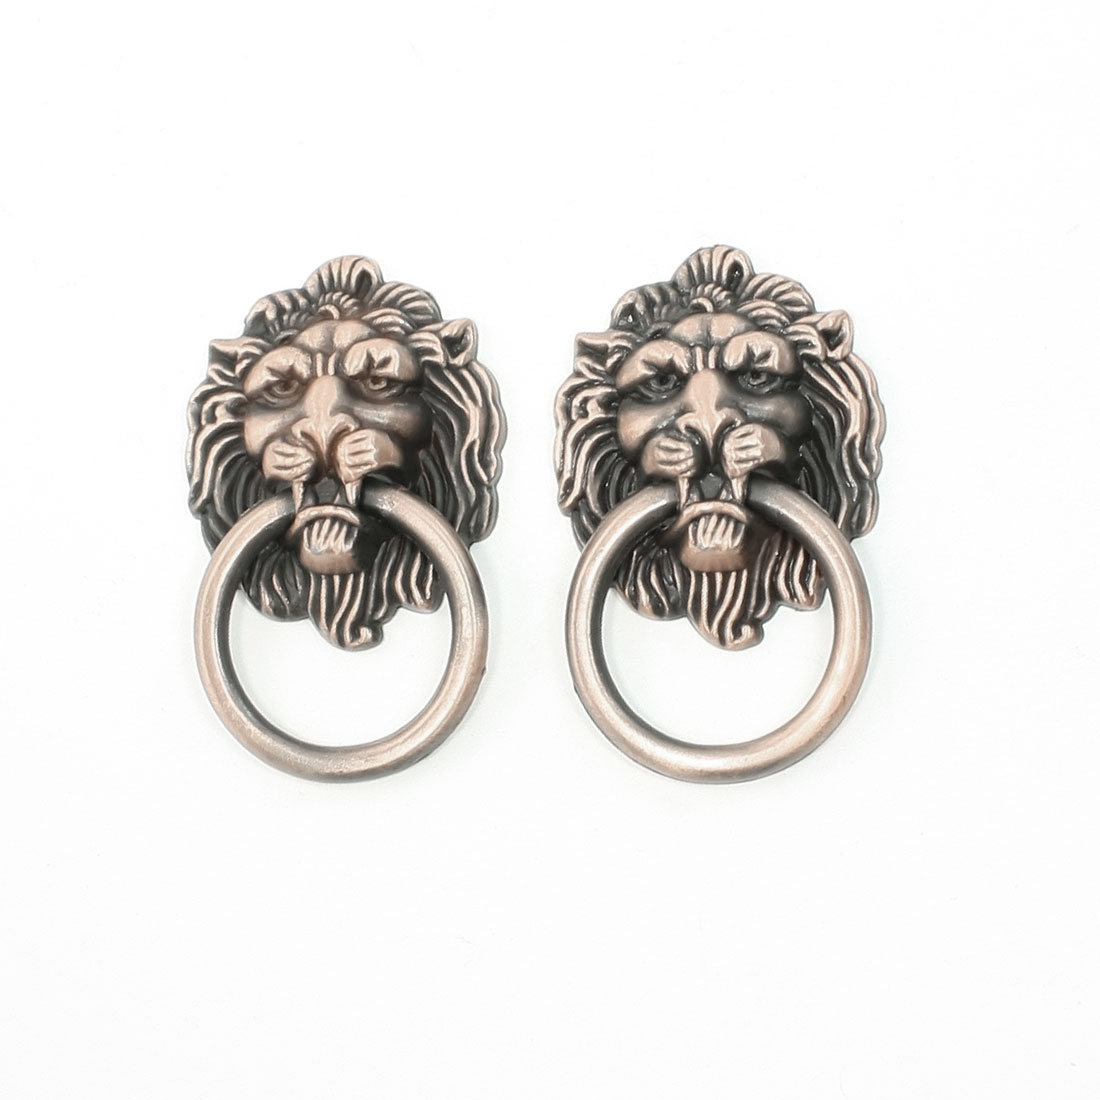 2 Pcs Retro Style Copper Tone Metal Ring Lion Head Shape Door Handle